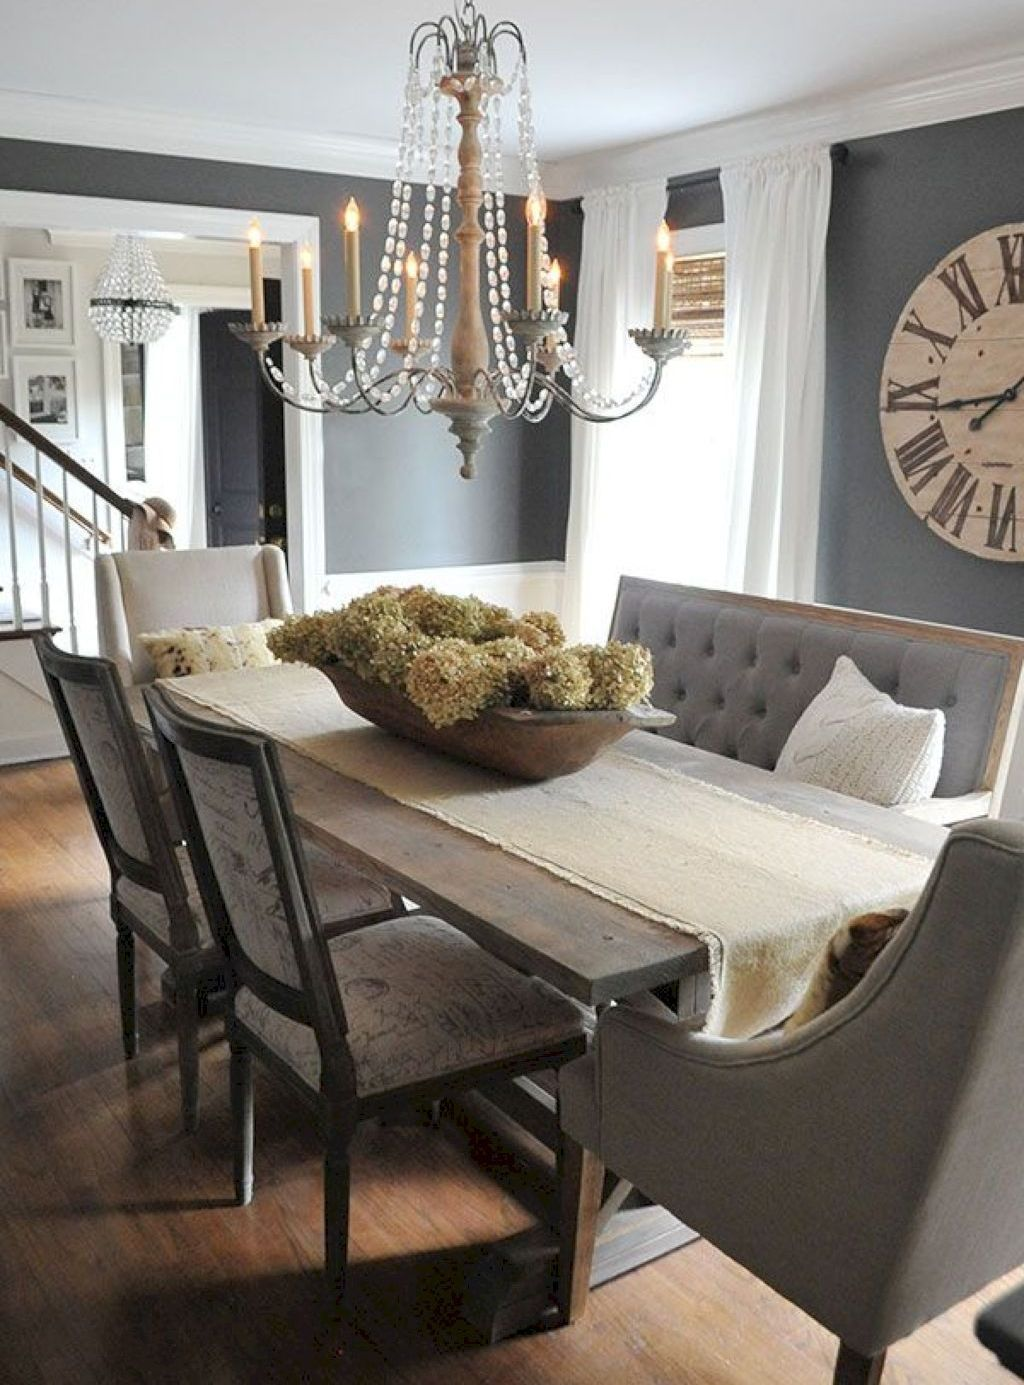 Gorgeous 50 Best Farmhouse Dining Room Decor And Design Ideas Https Homeideas Co 4876 50 Grey Dining Room Modern Farmhouse Dining Farmhouse Dining Room Table